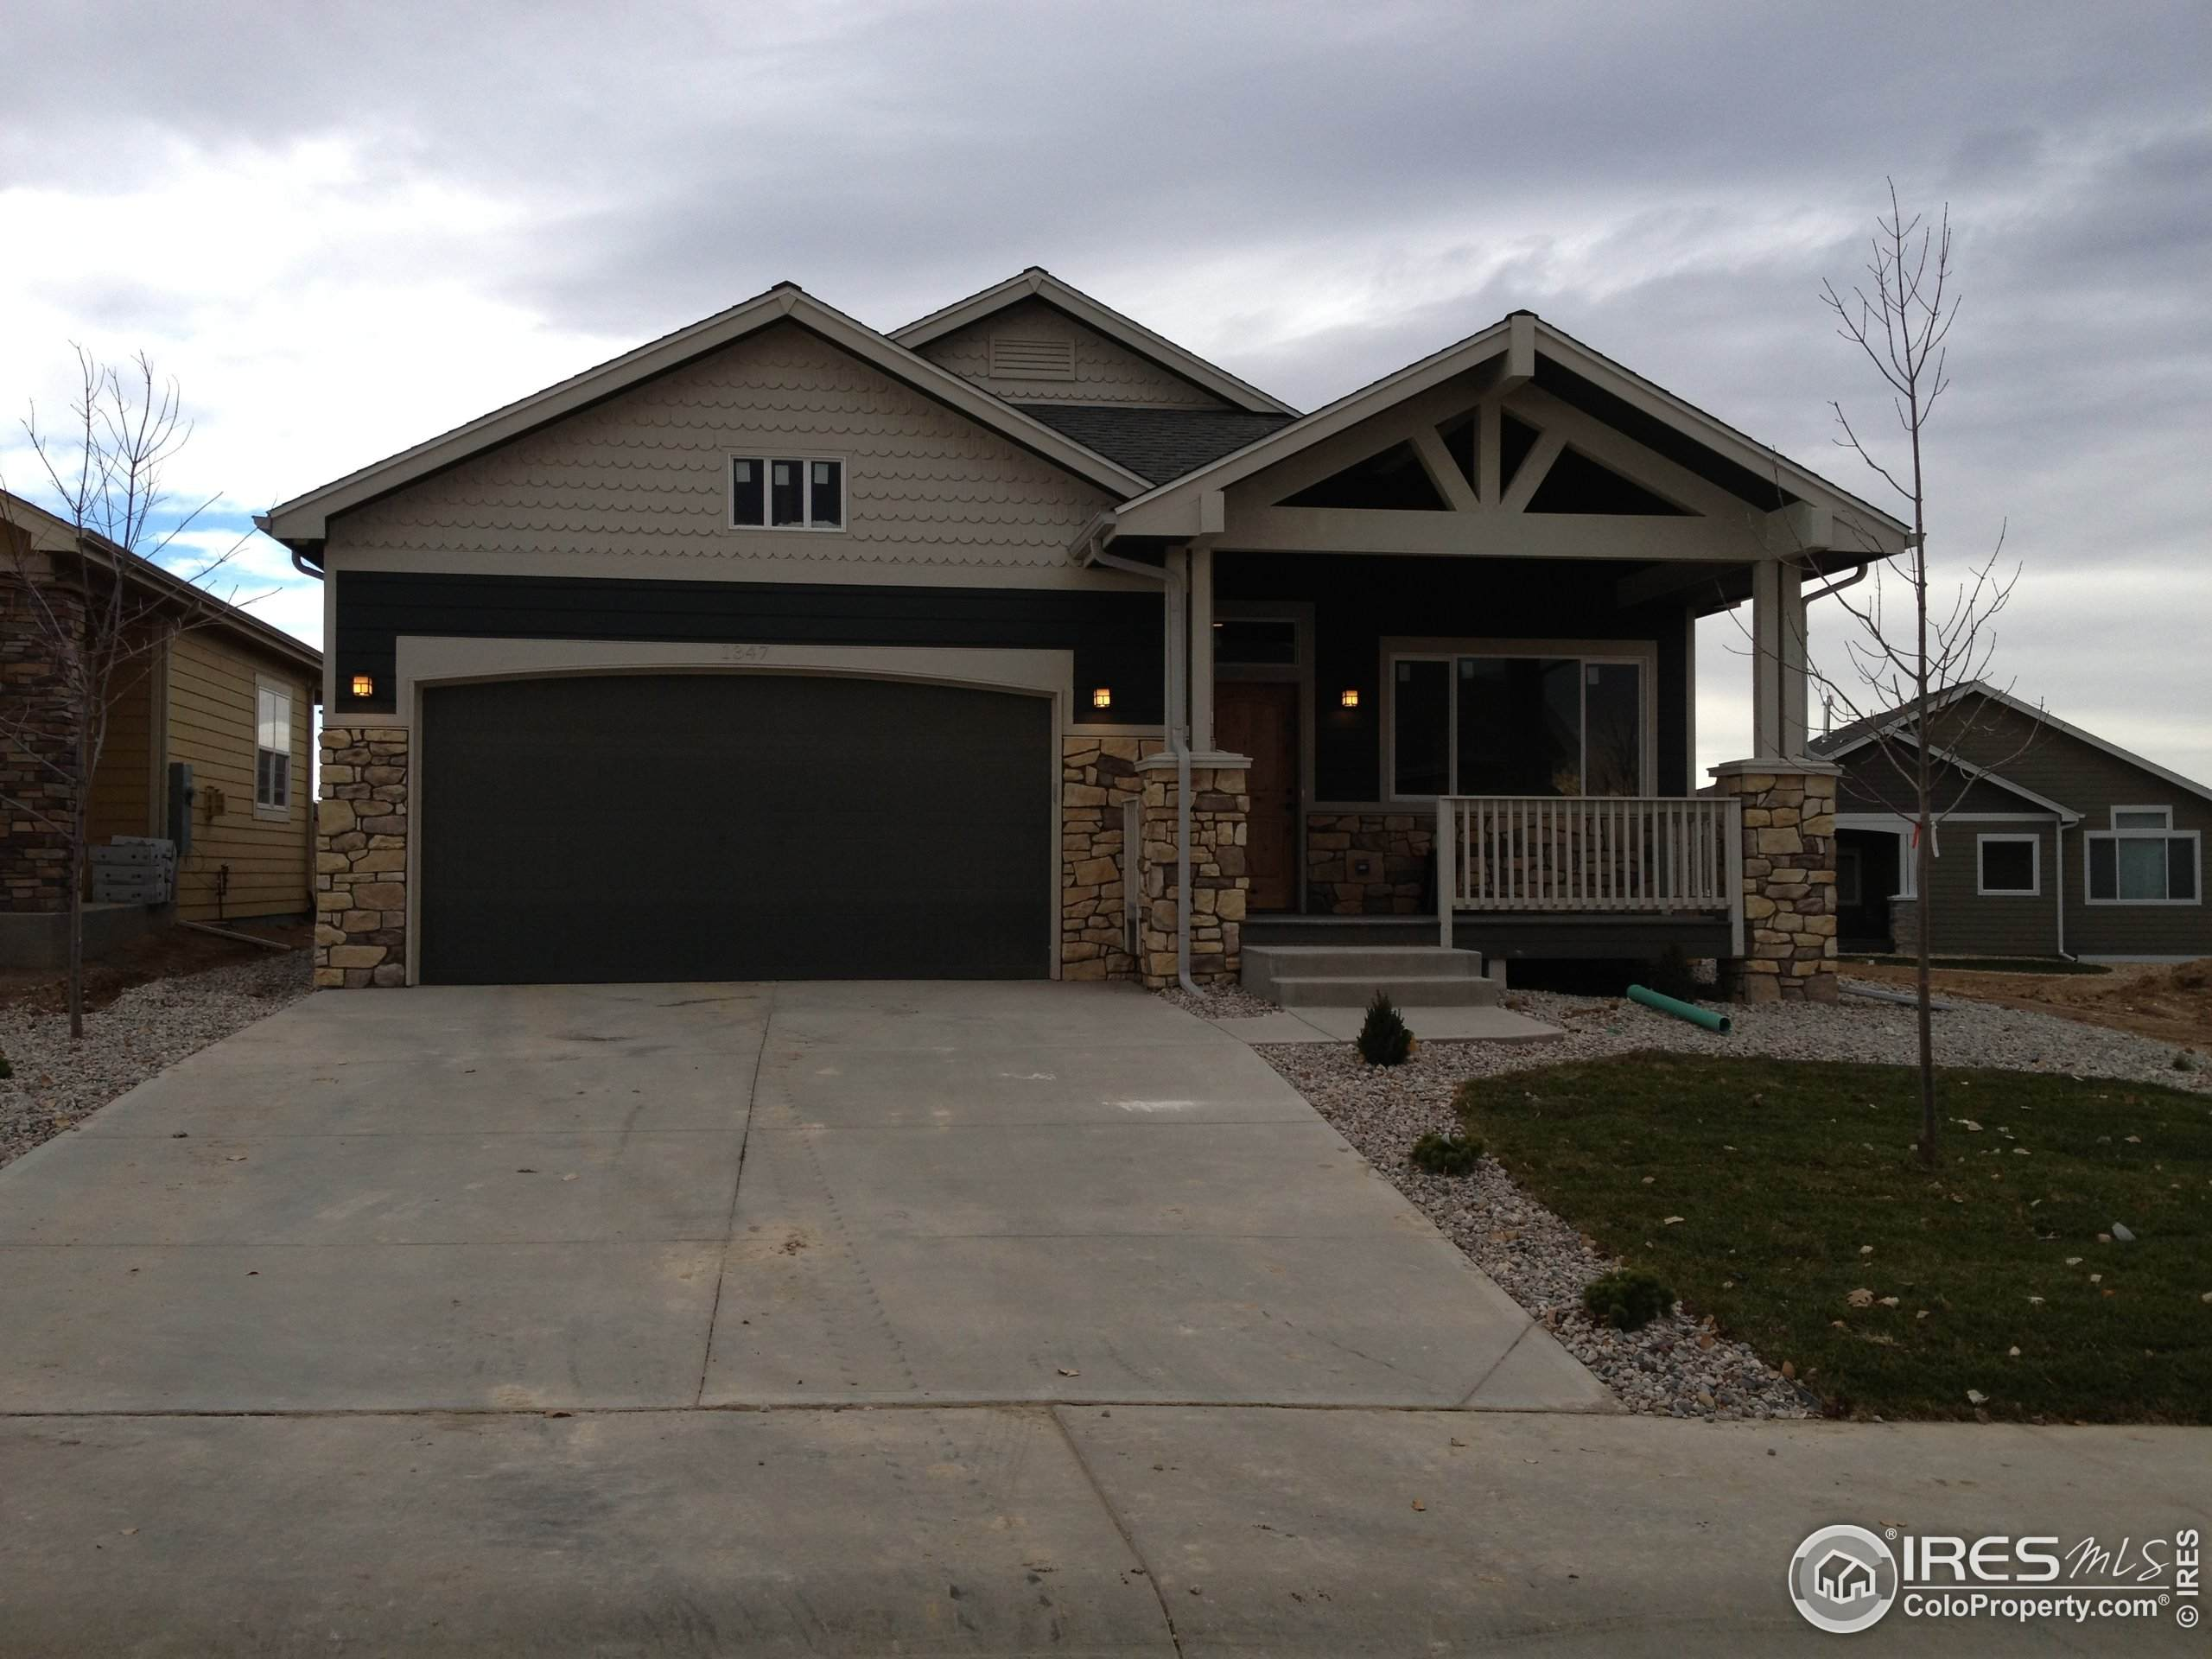 1089 Fall River Ct, Estes Park, CO 80517 (MLS #938024) :: RE/MAX Alliance